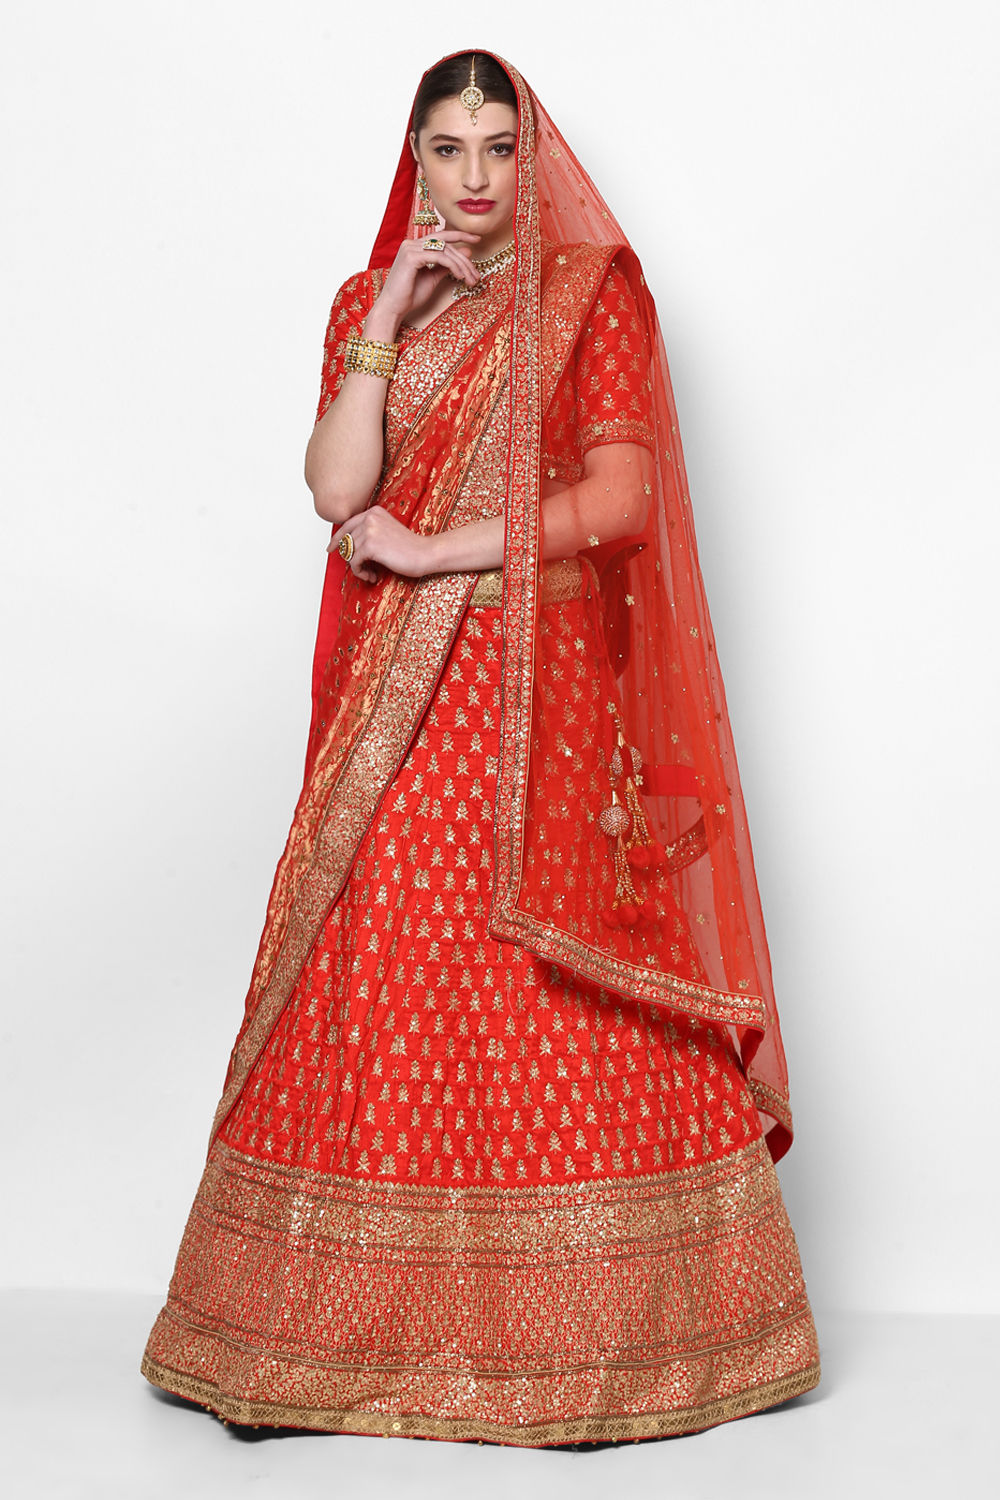 New Sabyasachi Lehenga Prices